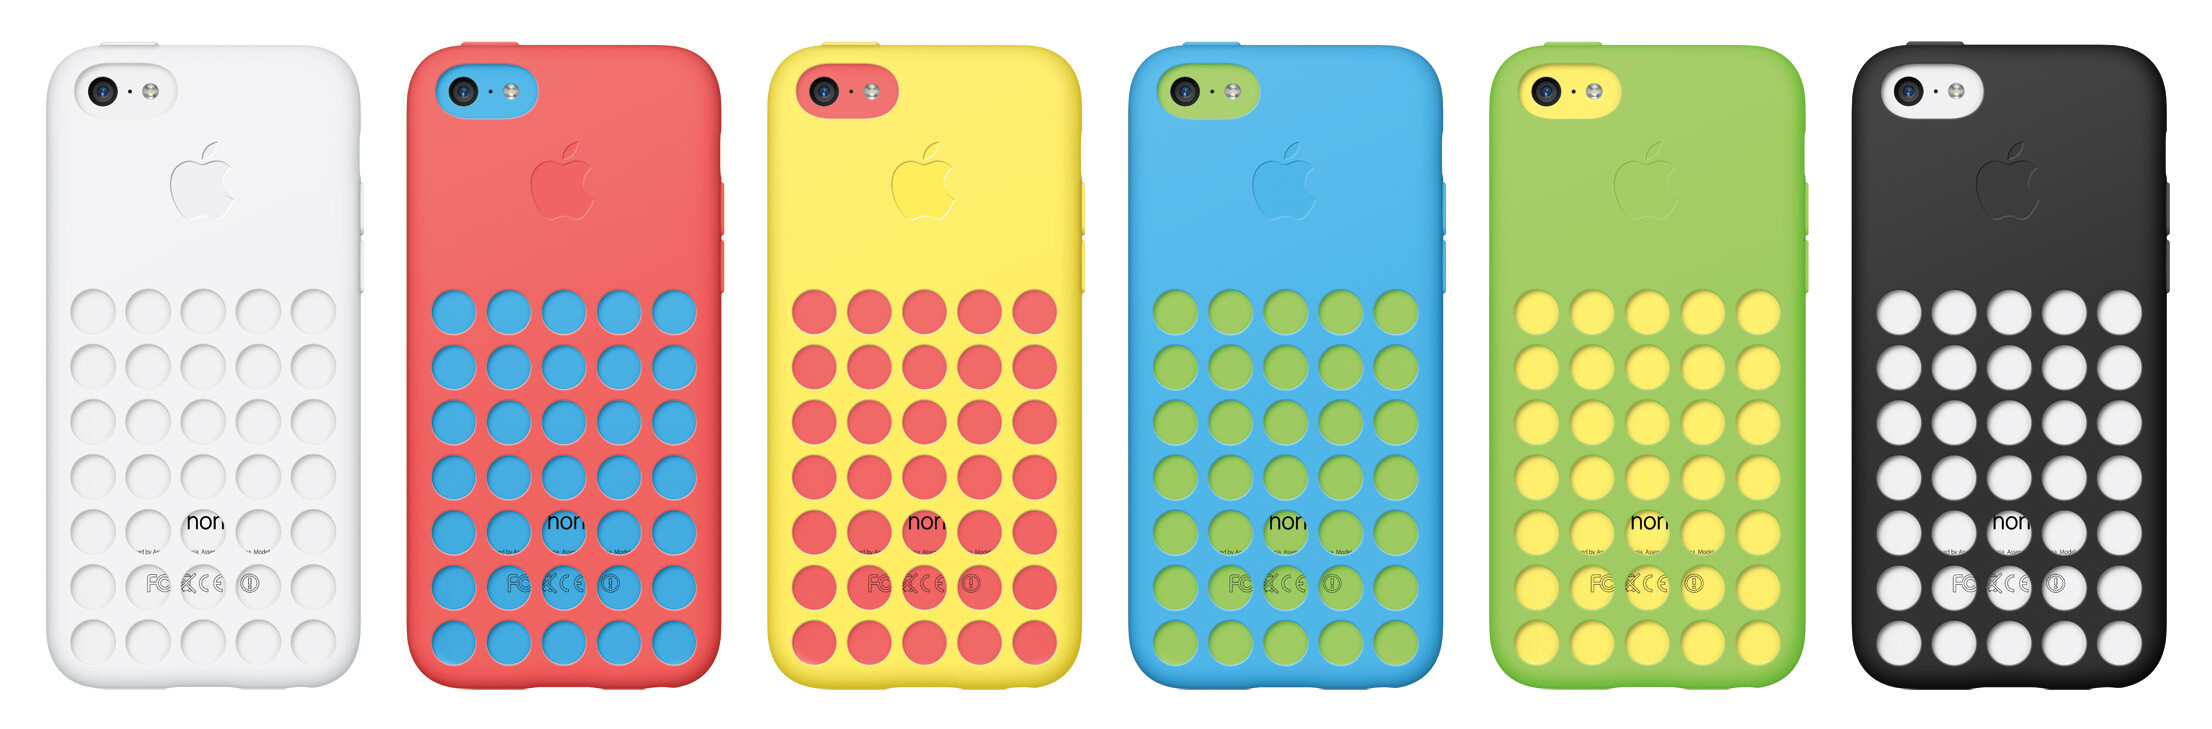 iPhone 5C review | Expert Reviews